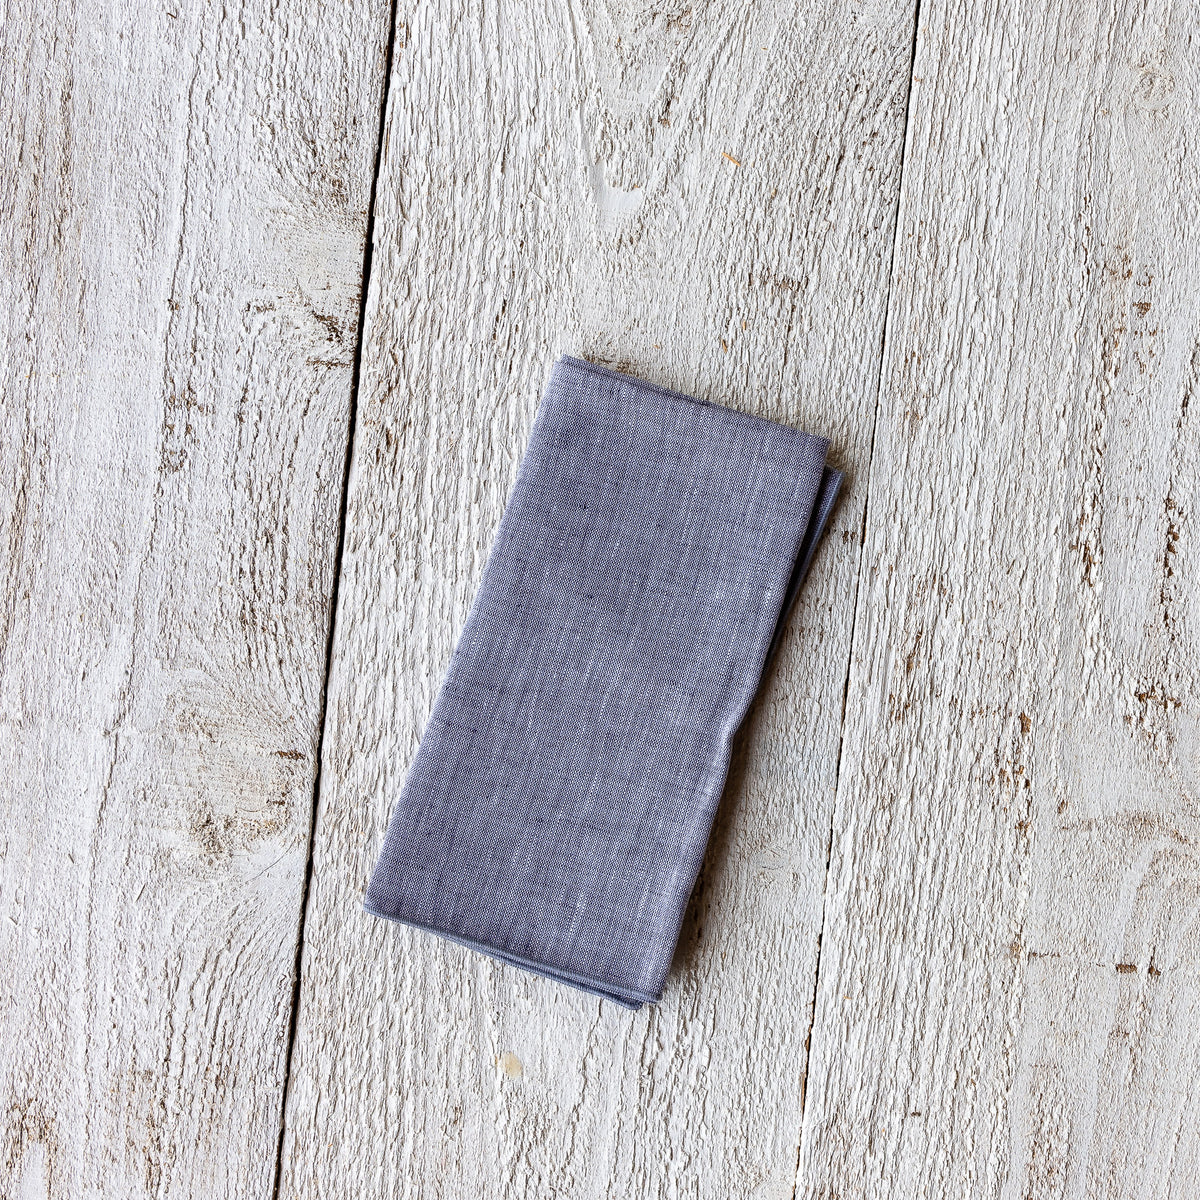 Grey-Blue Handmade 100% European Chambray Linen Napkin - Sold by Chic & Basta